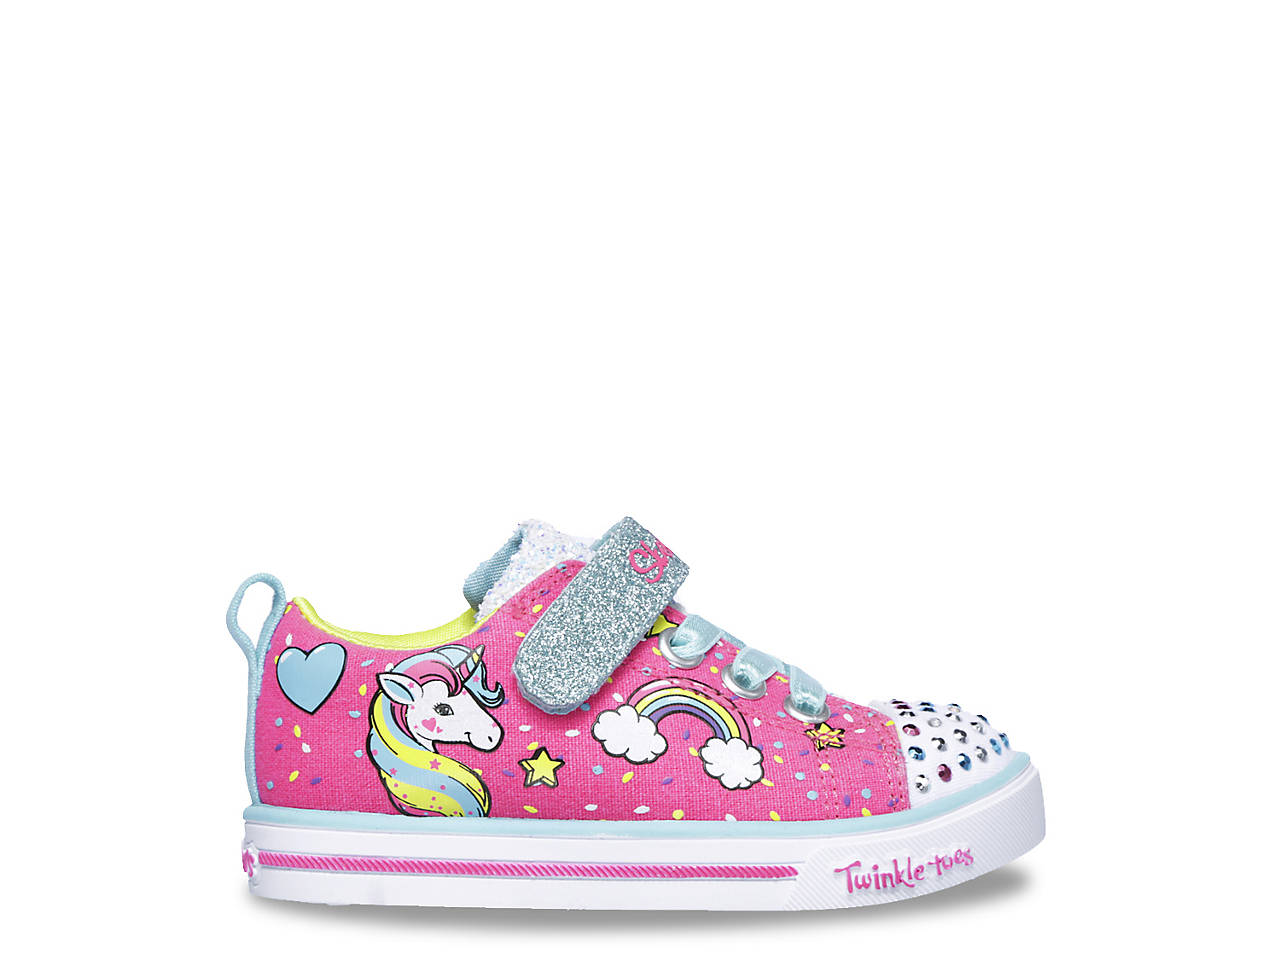 5909d1b1d525 Twinkle Toes Shuffle Sparkle Lite Unicorn Craze Toddler Light-Up Sneaker.  next